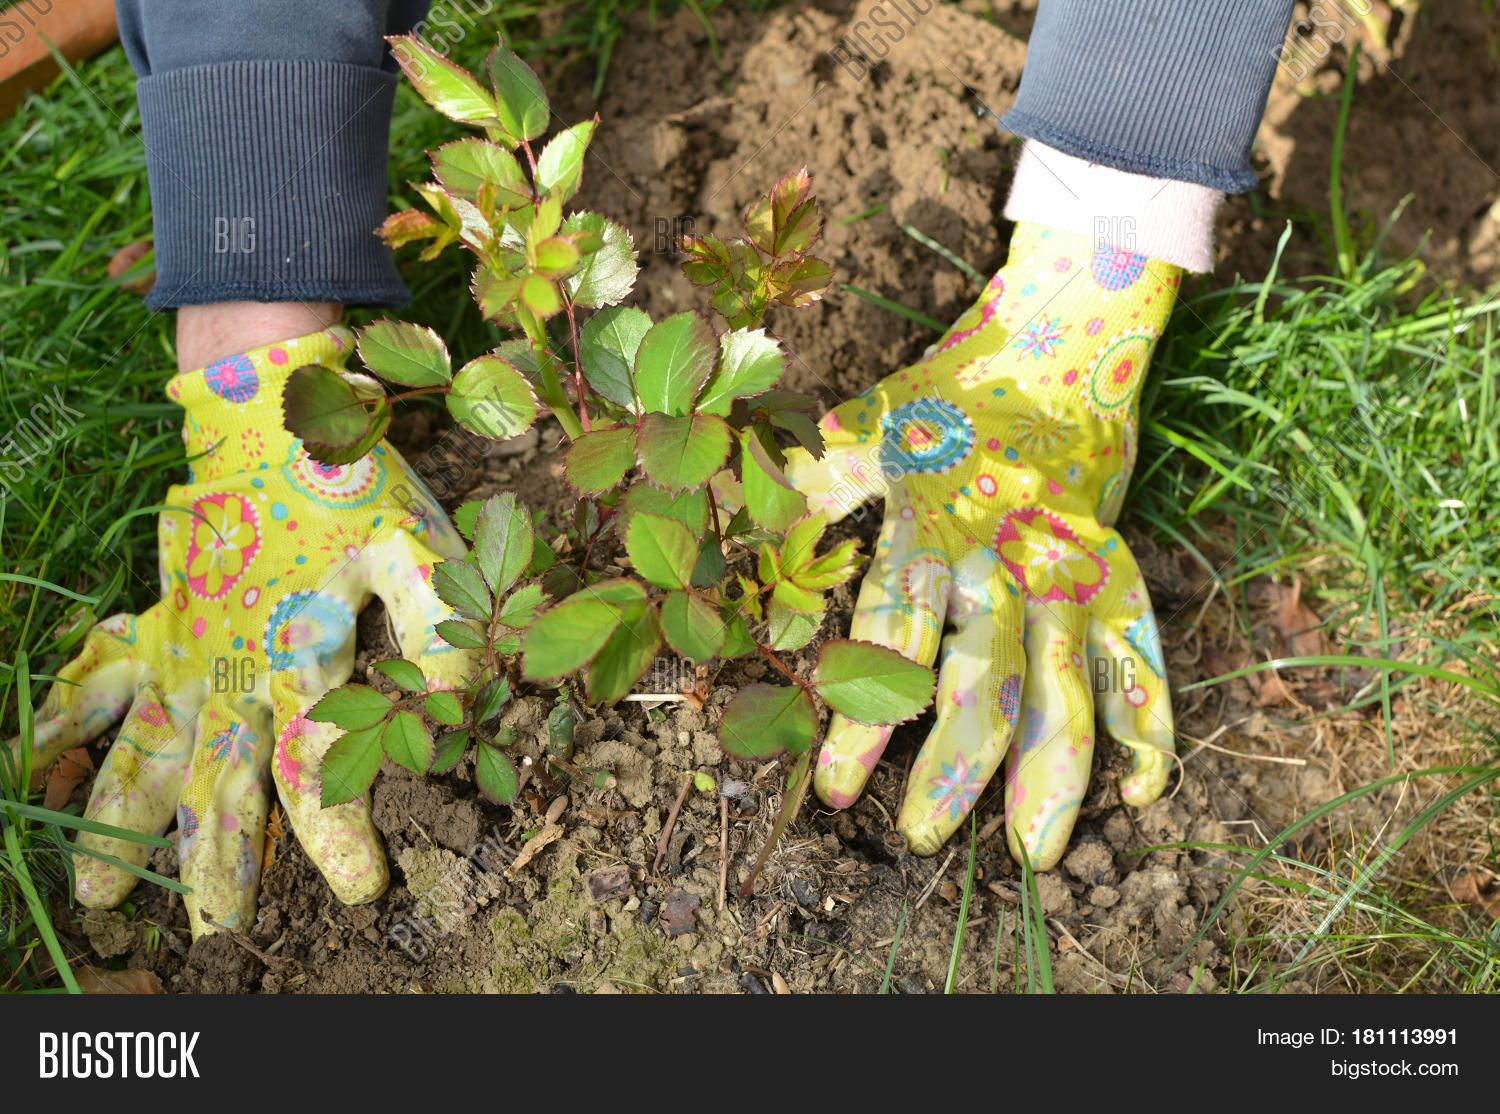 Hands garden gloves planting rose image photo bigstock for Big hands for gardening